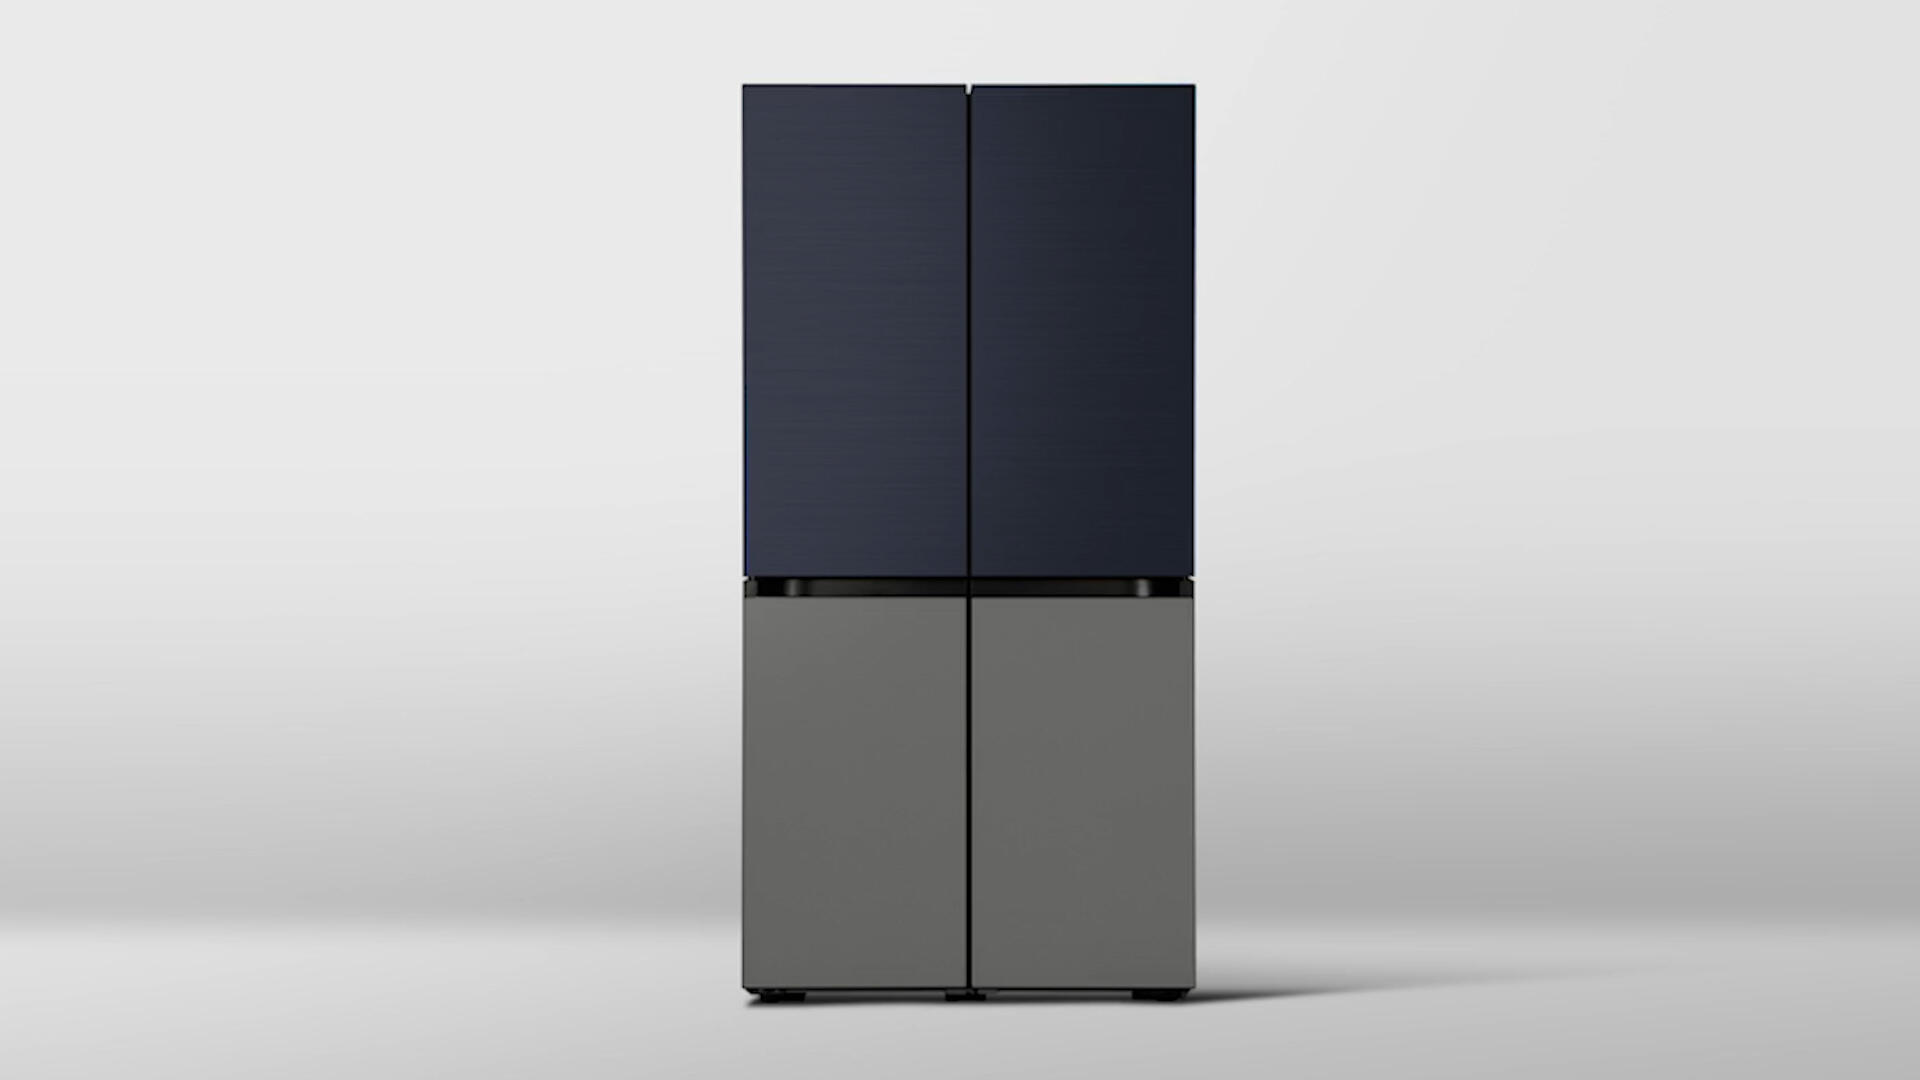 Video: Samsung's Bespoke fridges bring new colors into the kitchen